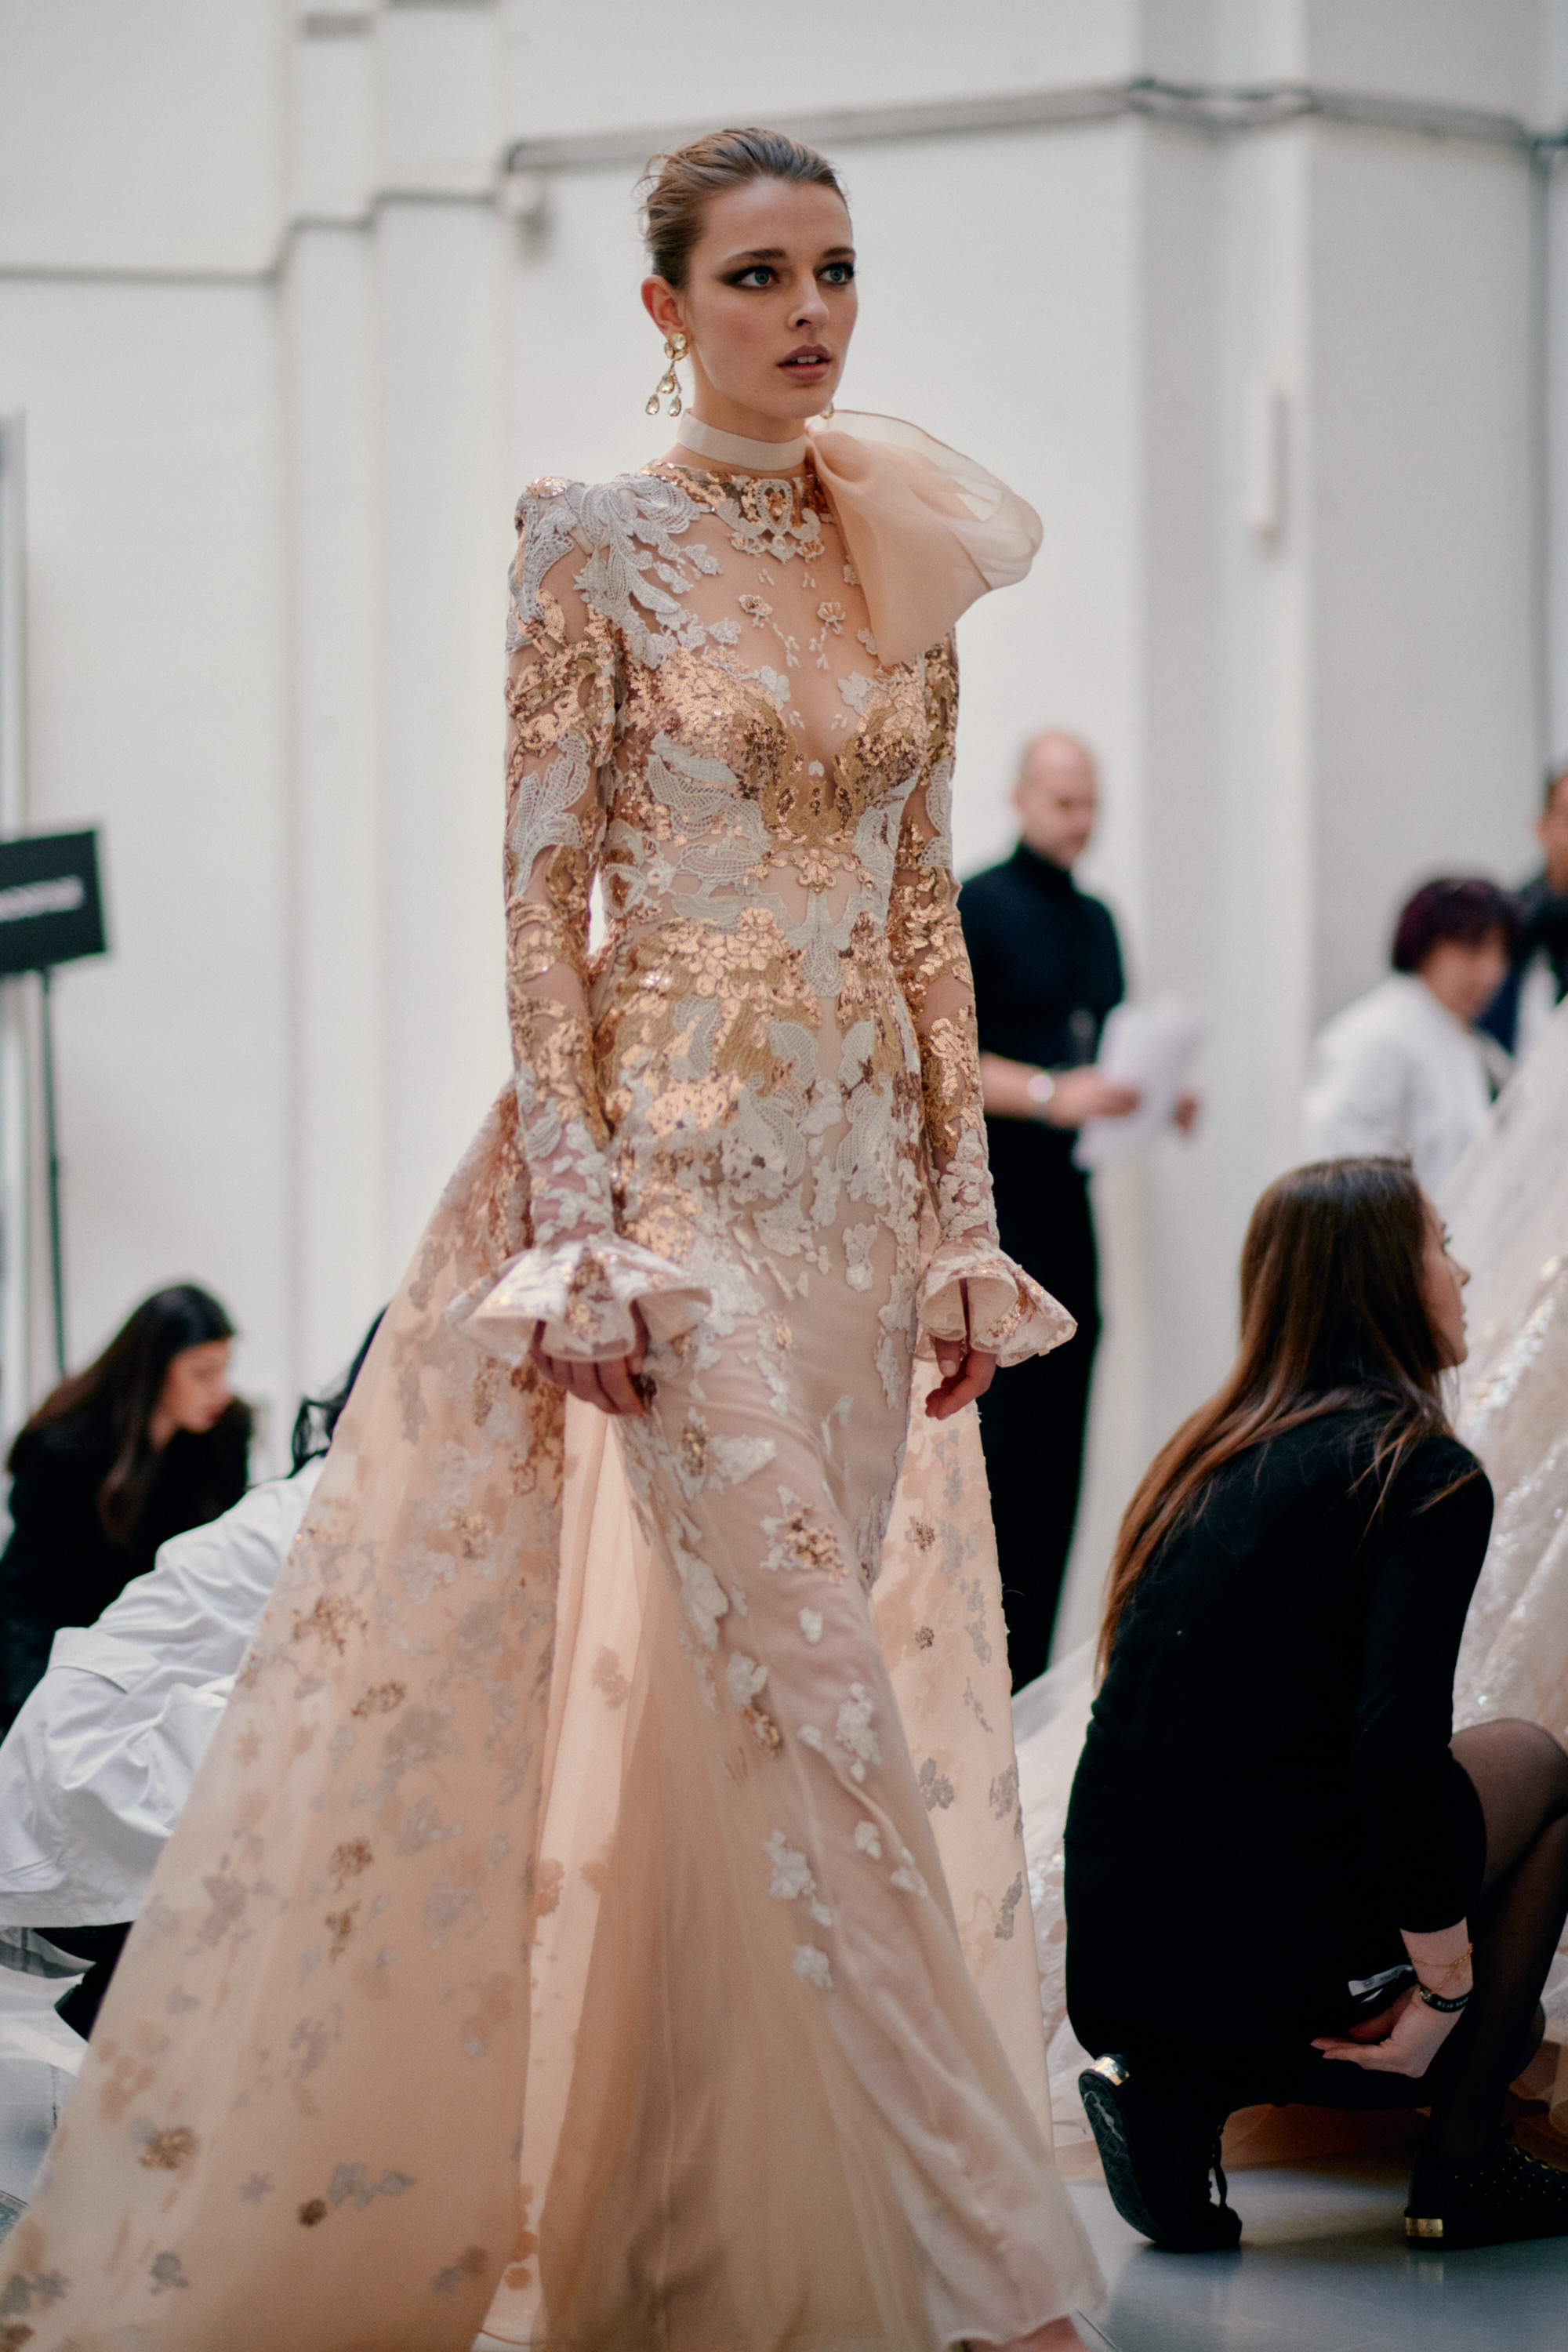 0561_ElieSaab_Couture_Vogue_22Jan2020_Credit-Jamie-Stoker